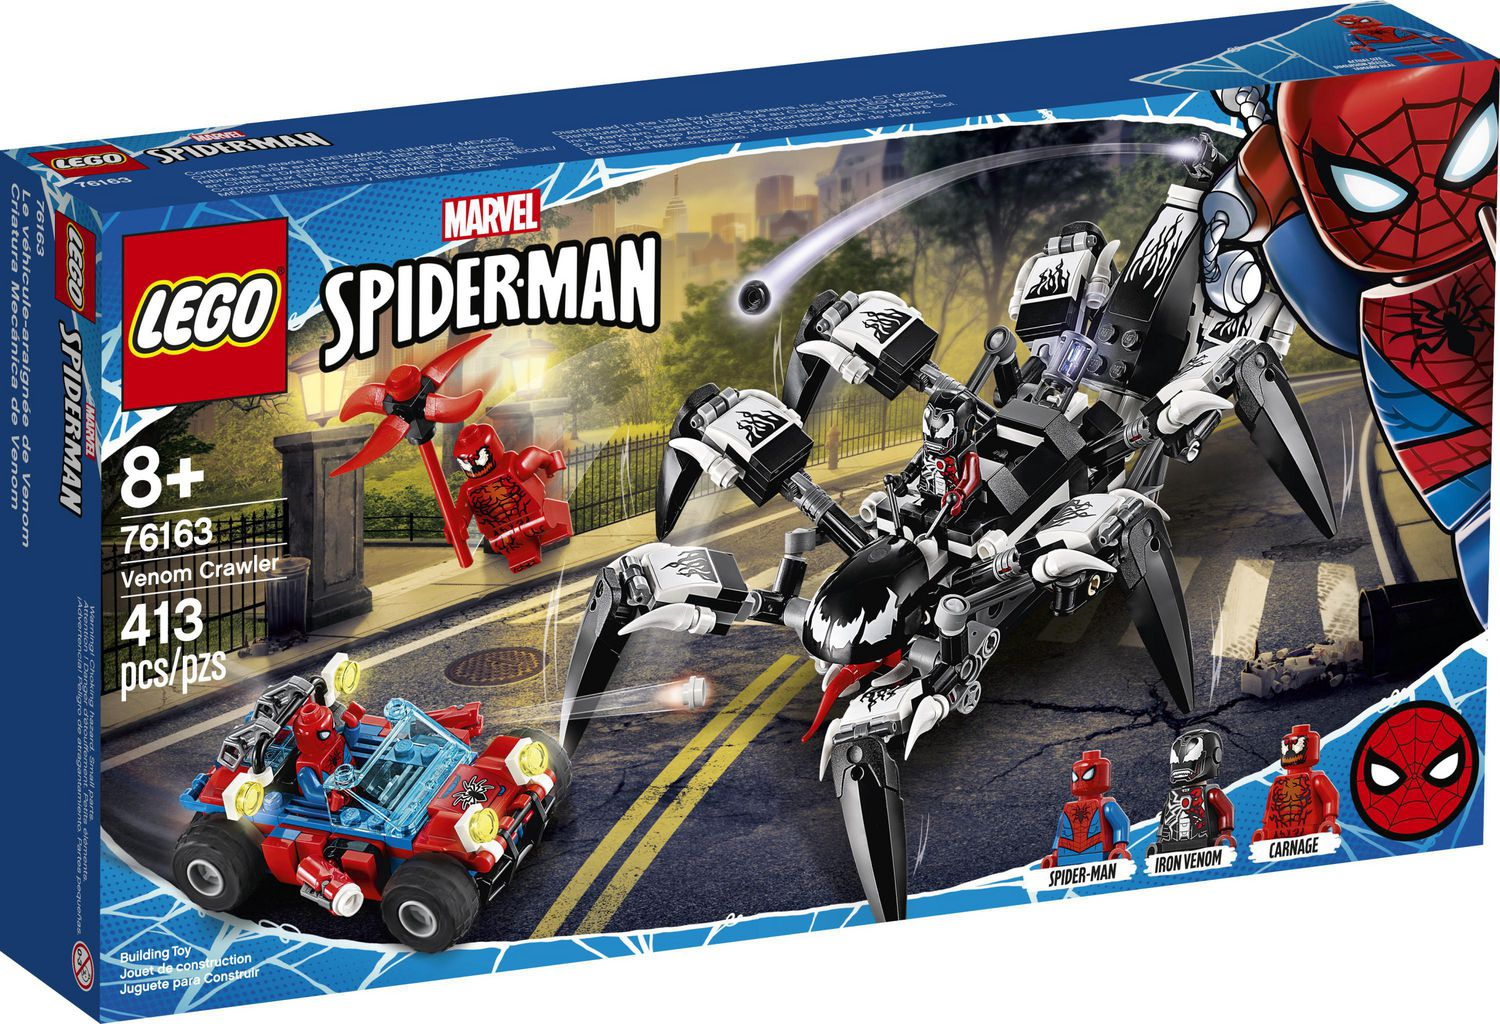 LEGO Marvel Spider-Man - Venom Crawler (76163) Building Toy